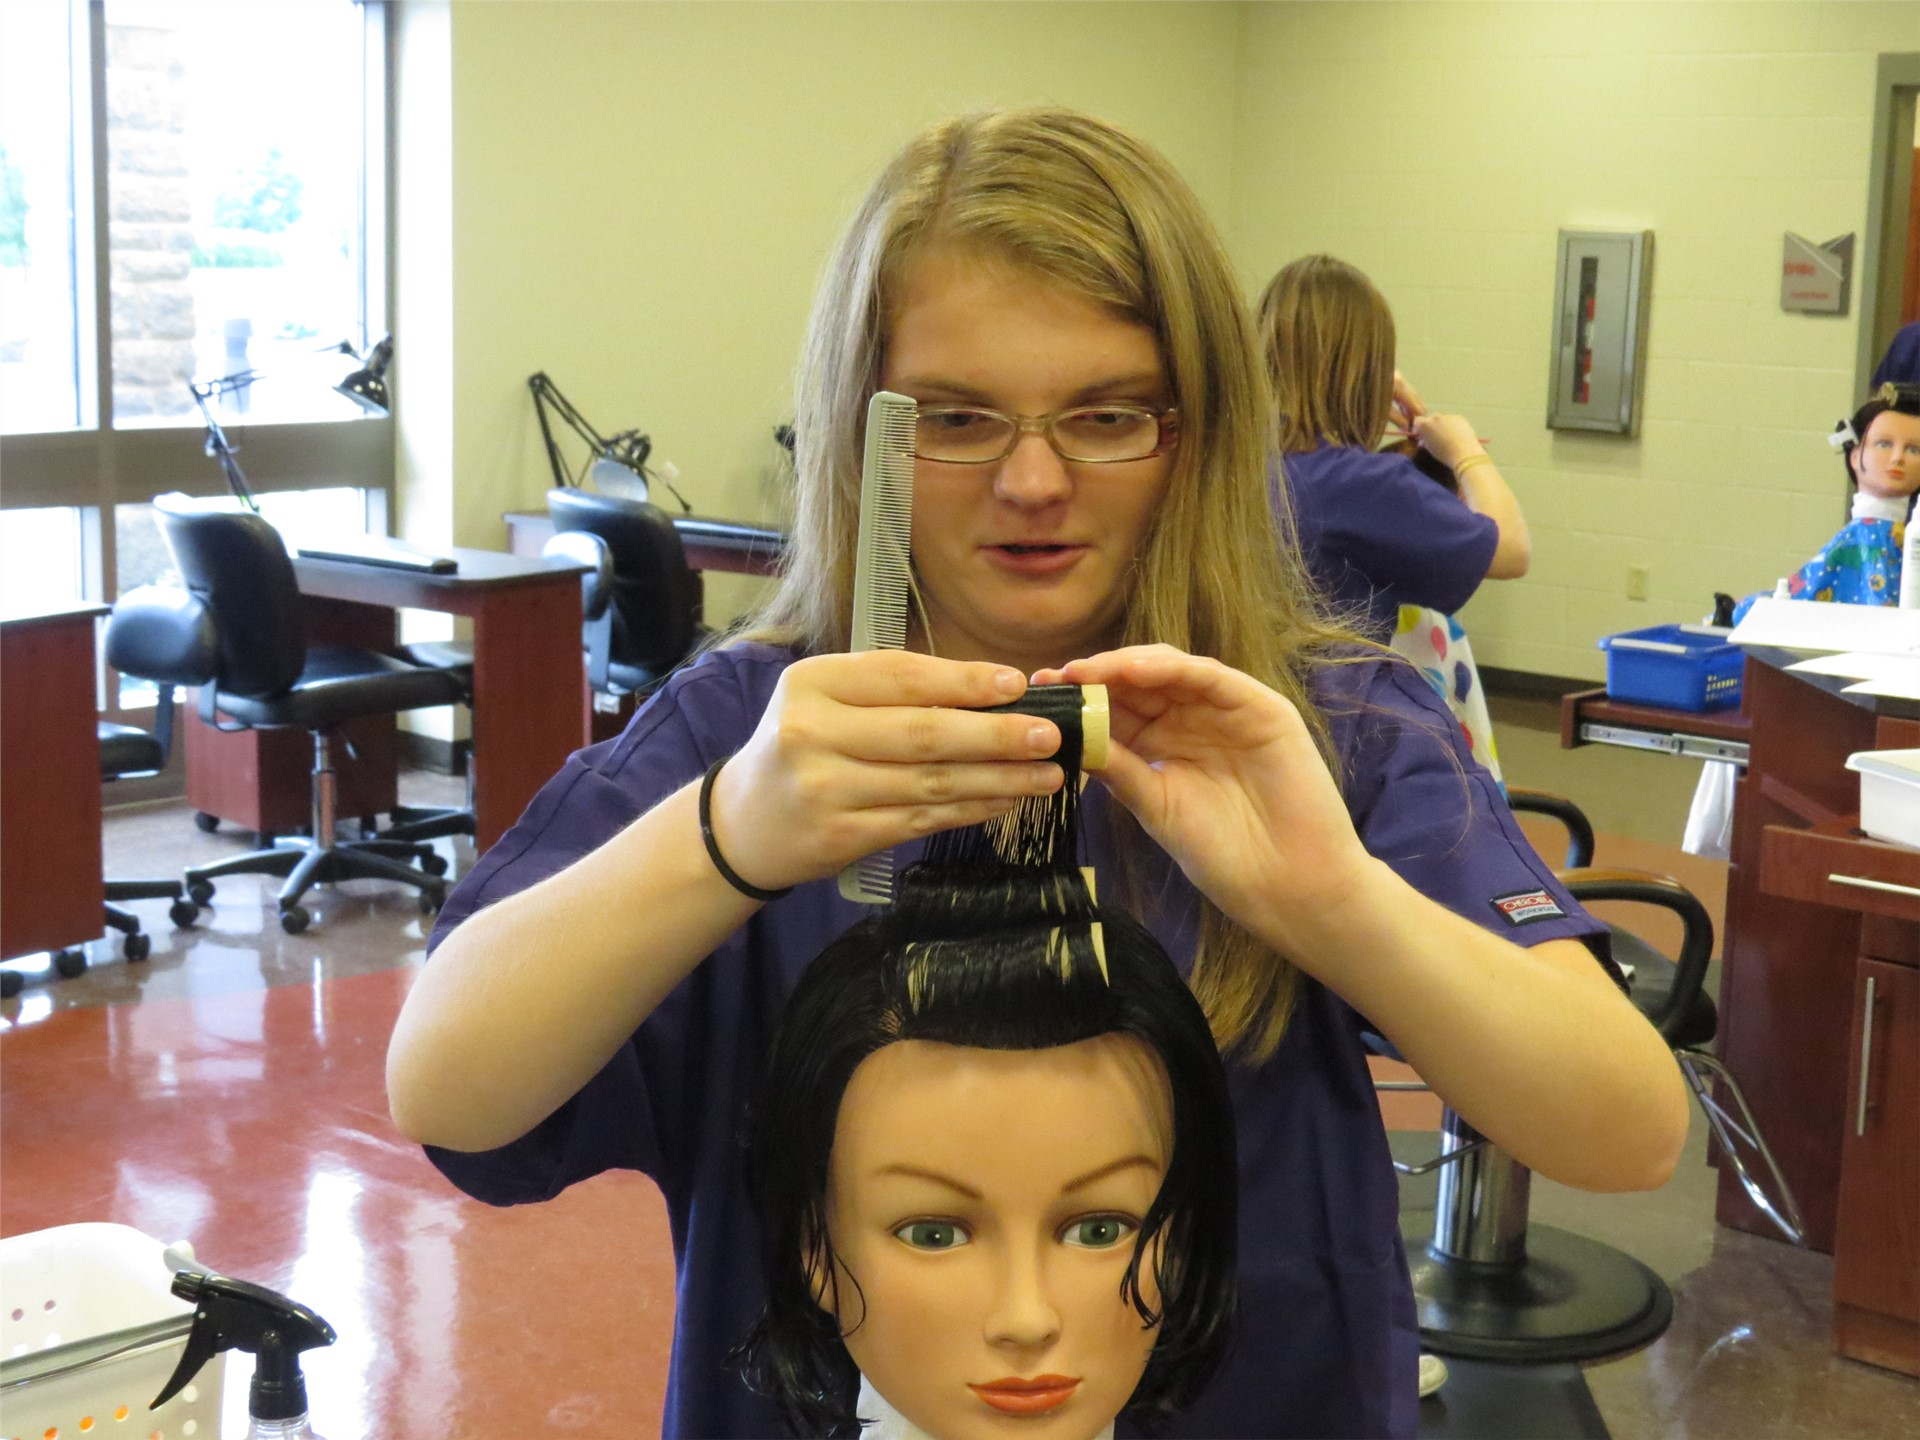 A female Cosmetology student putting curlers on a mannequin